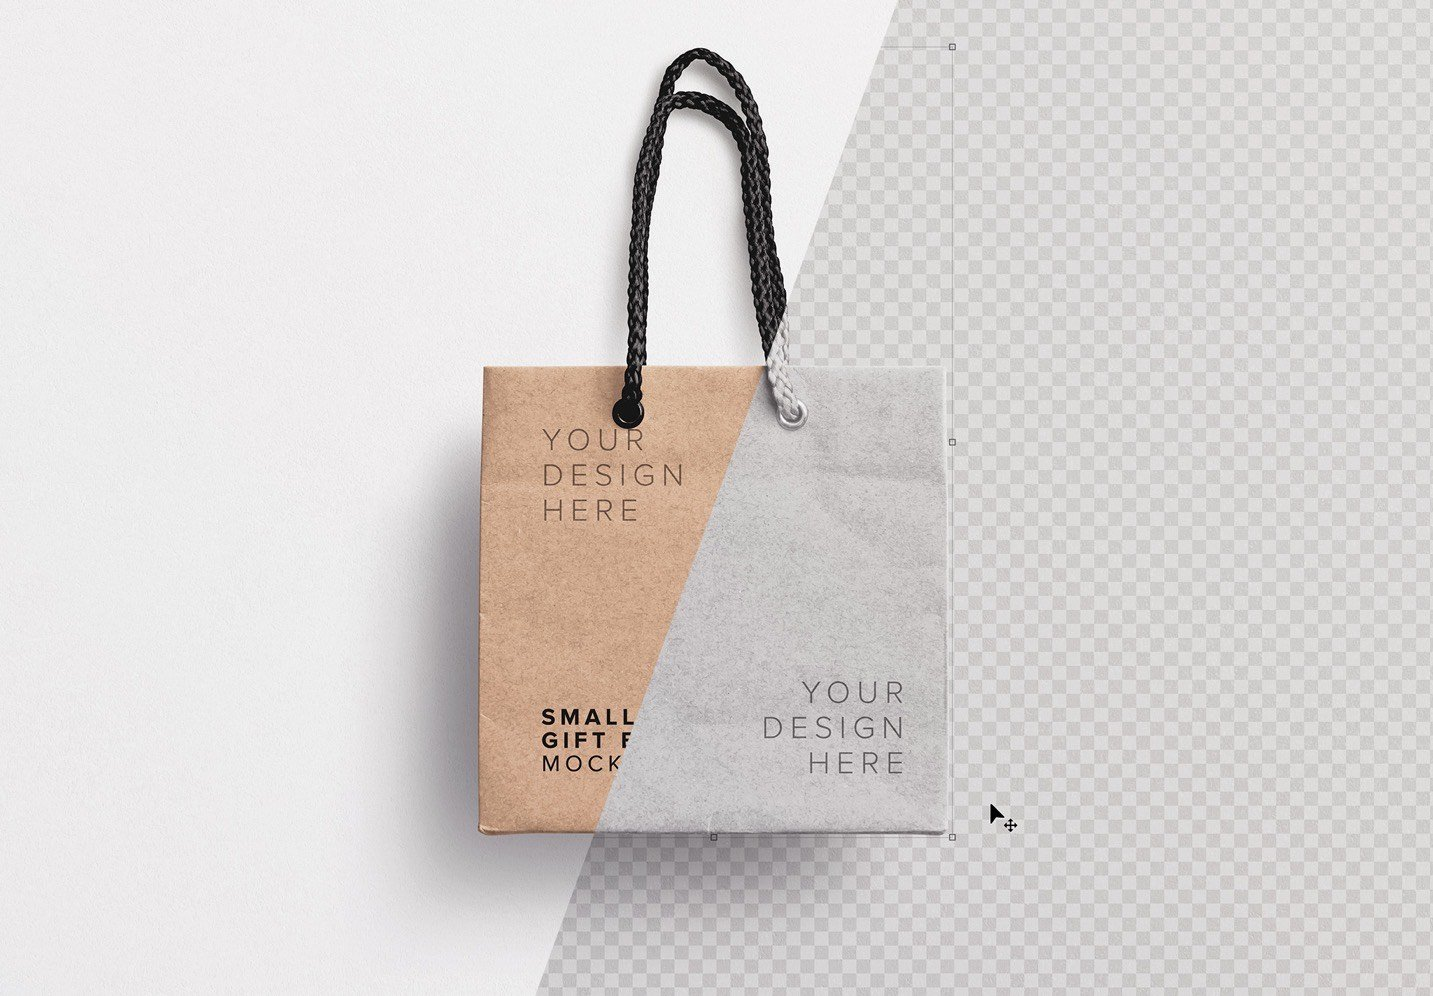 gifts and shopping go hand in hand for free paper bag templates are used for that to keep stuffs inside. Small Gift Bag Mockup Custom Scene